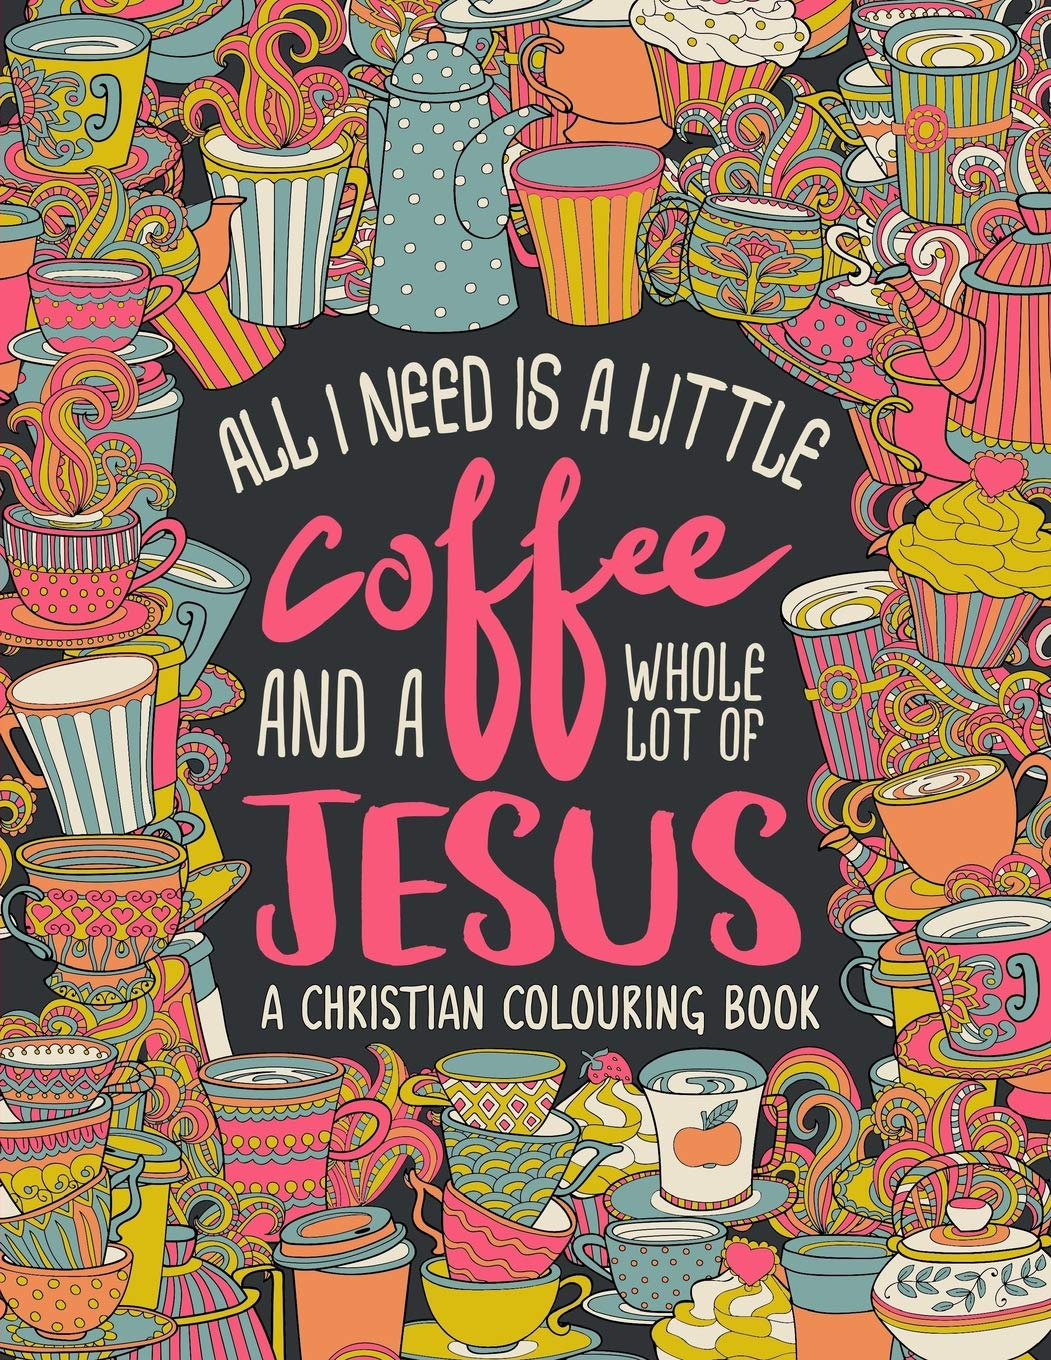 A Christian Colouring Book: All I Need is a Little Coffee.